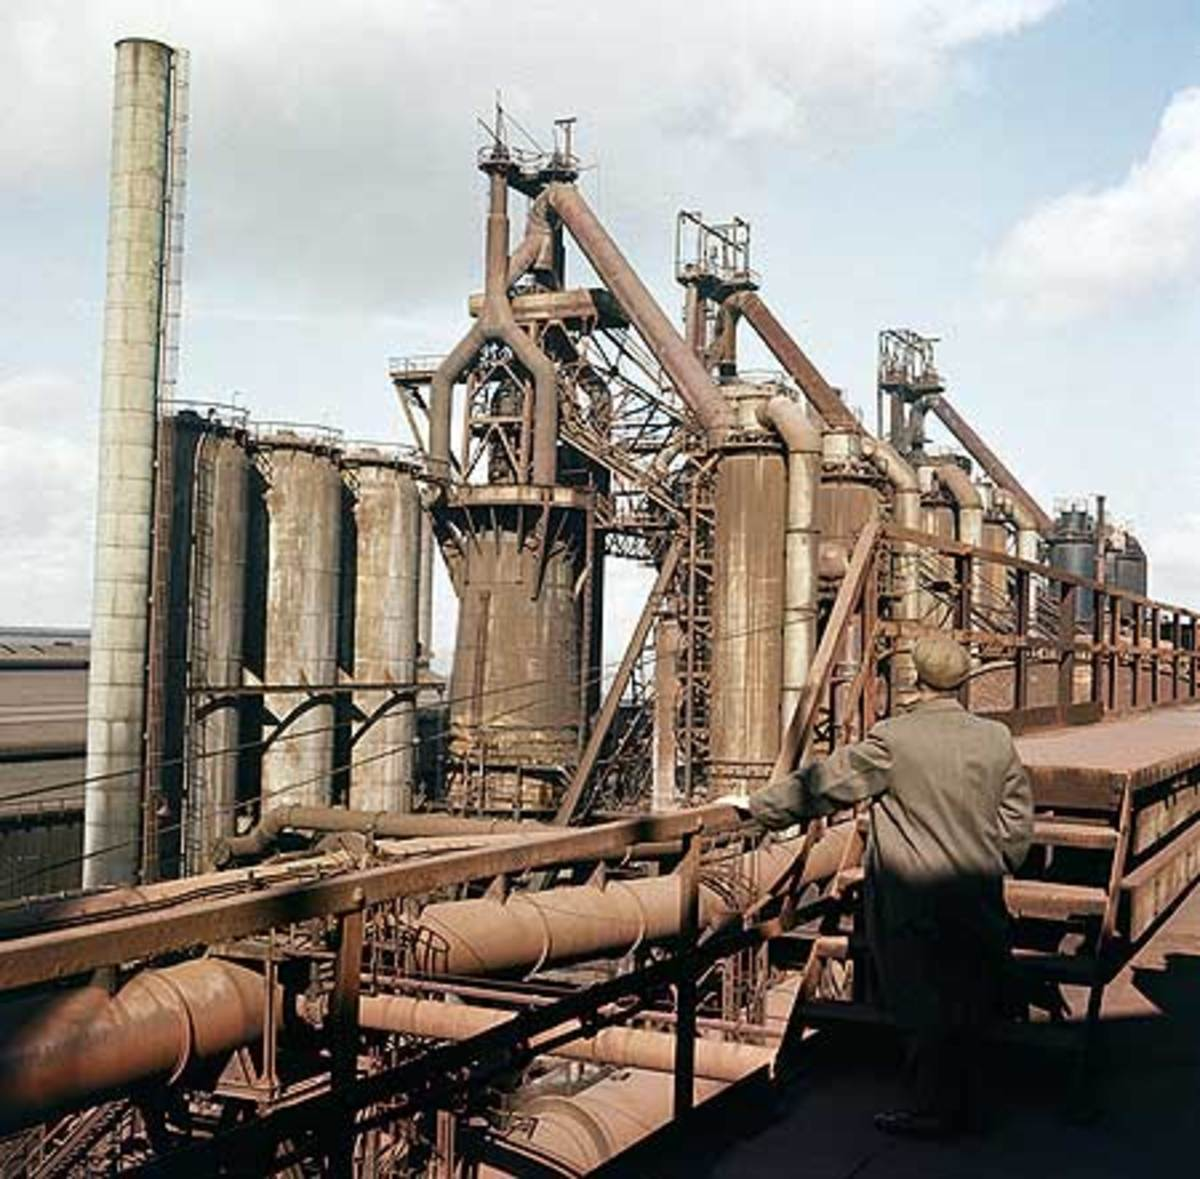 De-commissioned blast furnaces at Consett after closure in 1980. Great subject for photographic journalists, yesterday's news for most, the heart torn out of the community